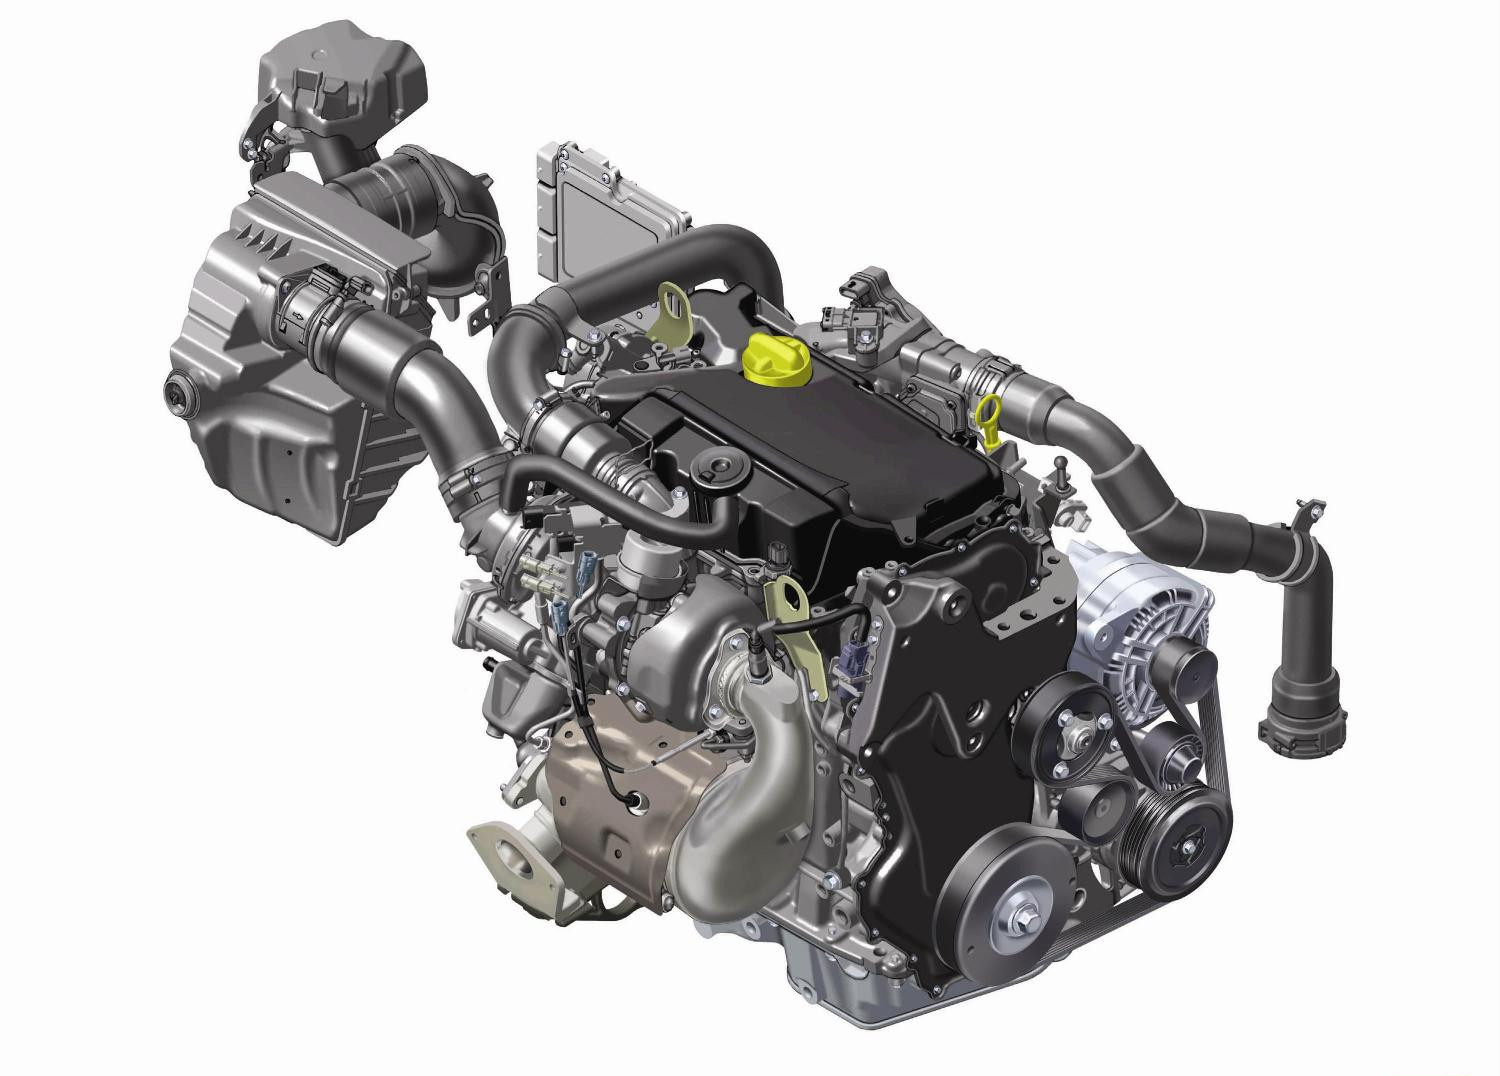 renault launches energy dci 130 1 6l engine on scenic autoevolution. Black Bedroom Furniture Sets. Home Design Ideas